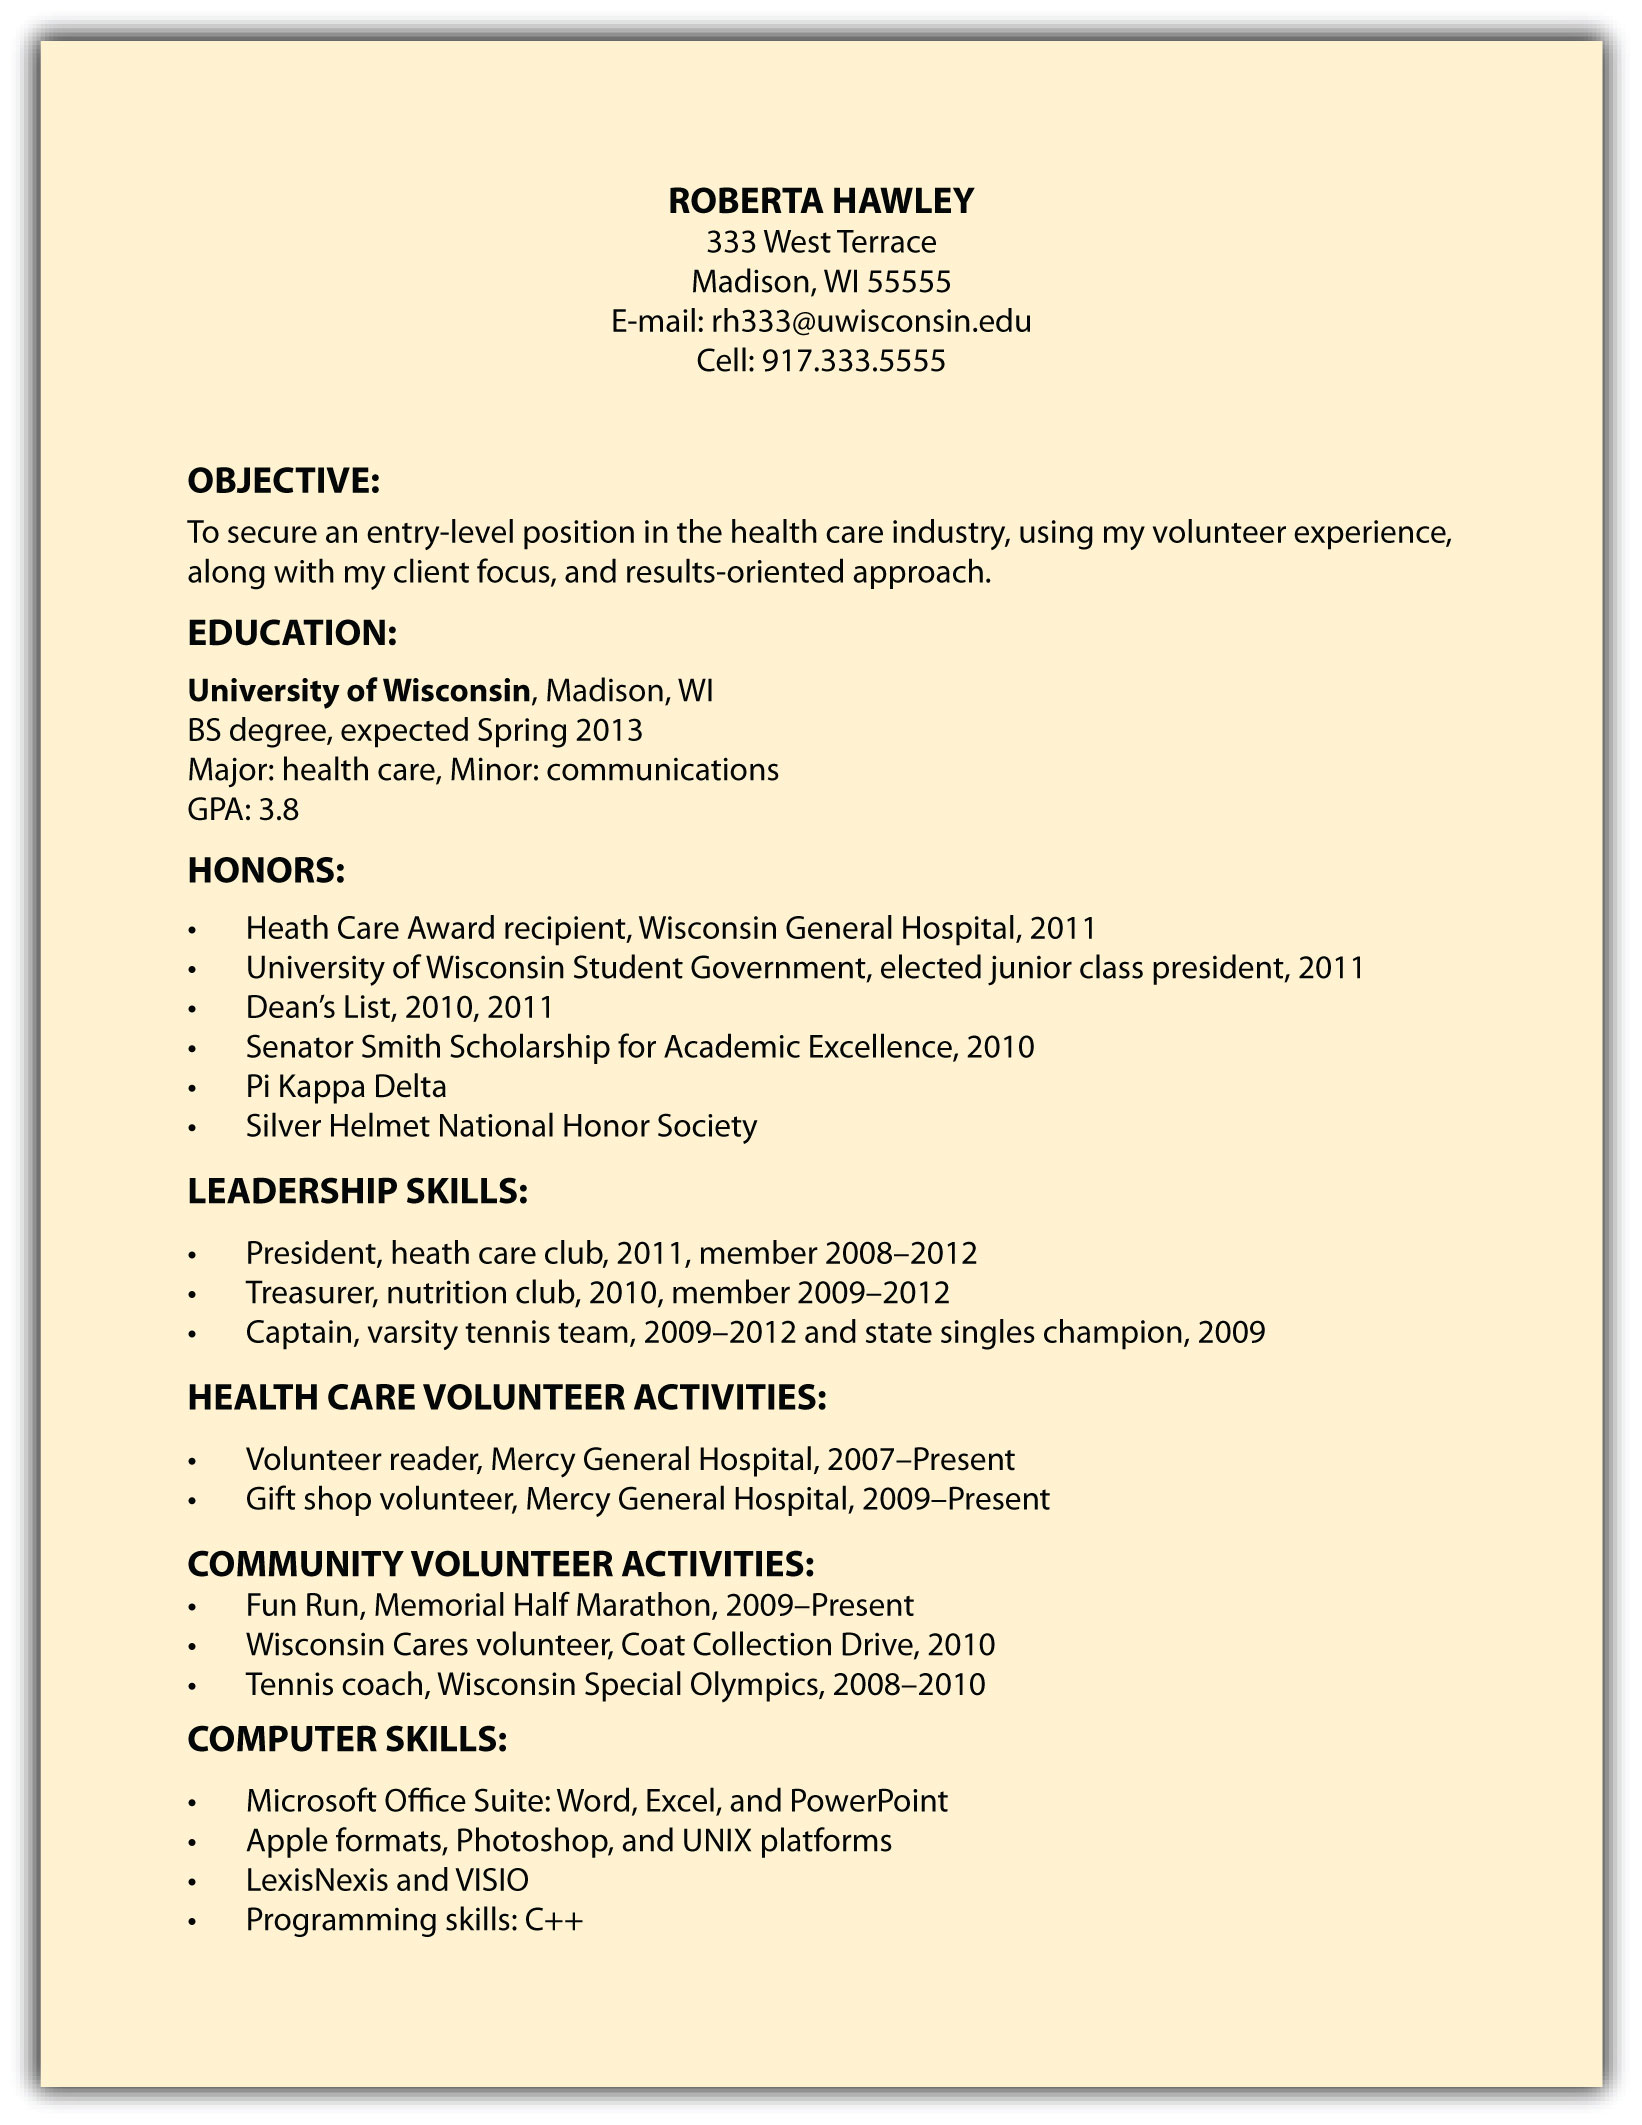 Functional Résumés  Functional Resume Vs Chronological